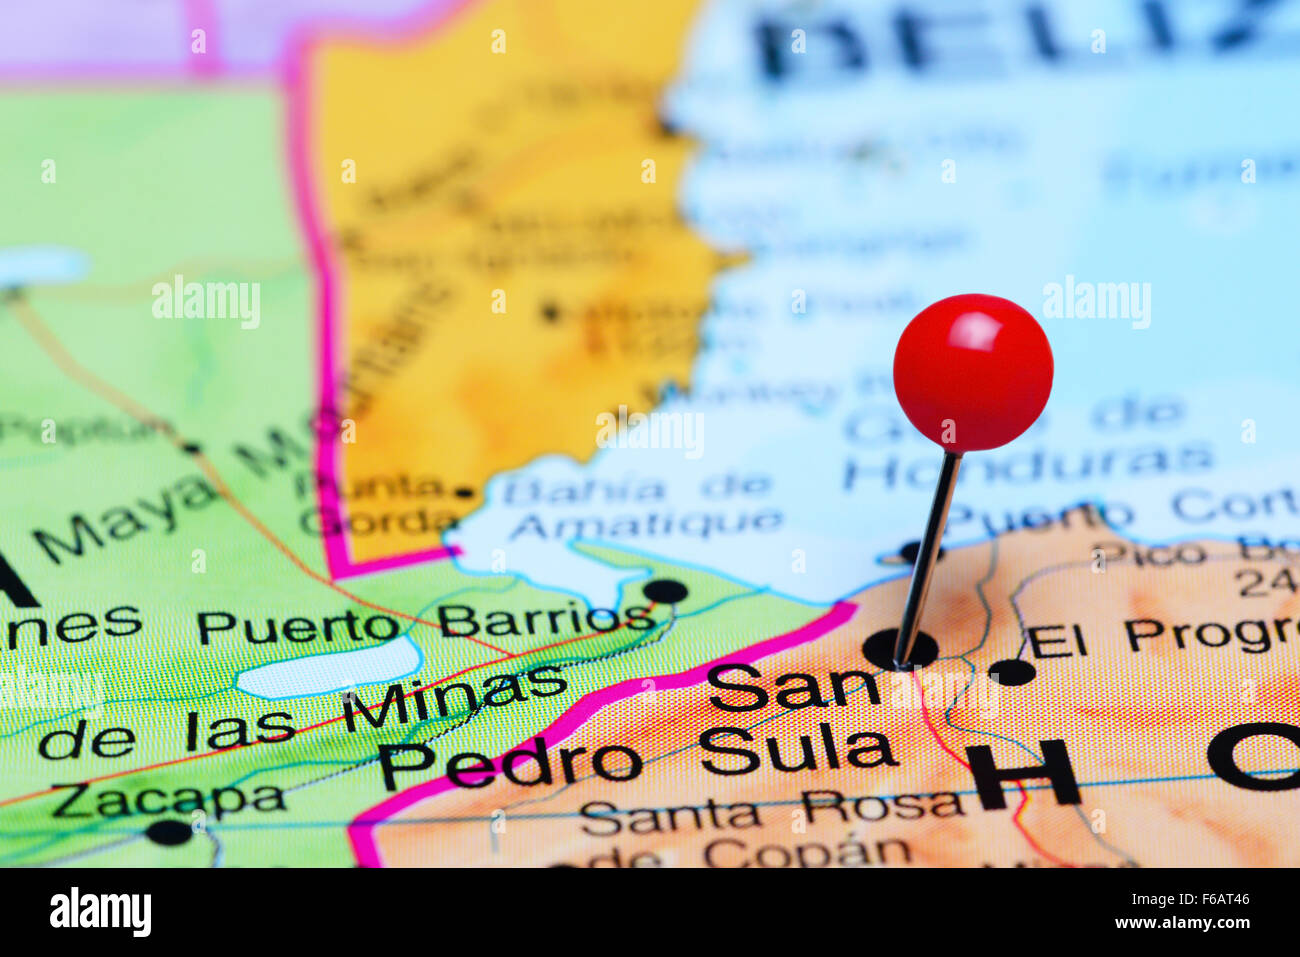 San Pedro Sula Pinned On A Map Of America Stock Photo Royalty - San pedro sula map